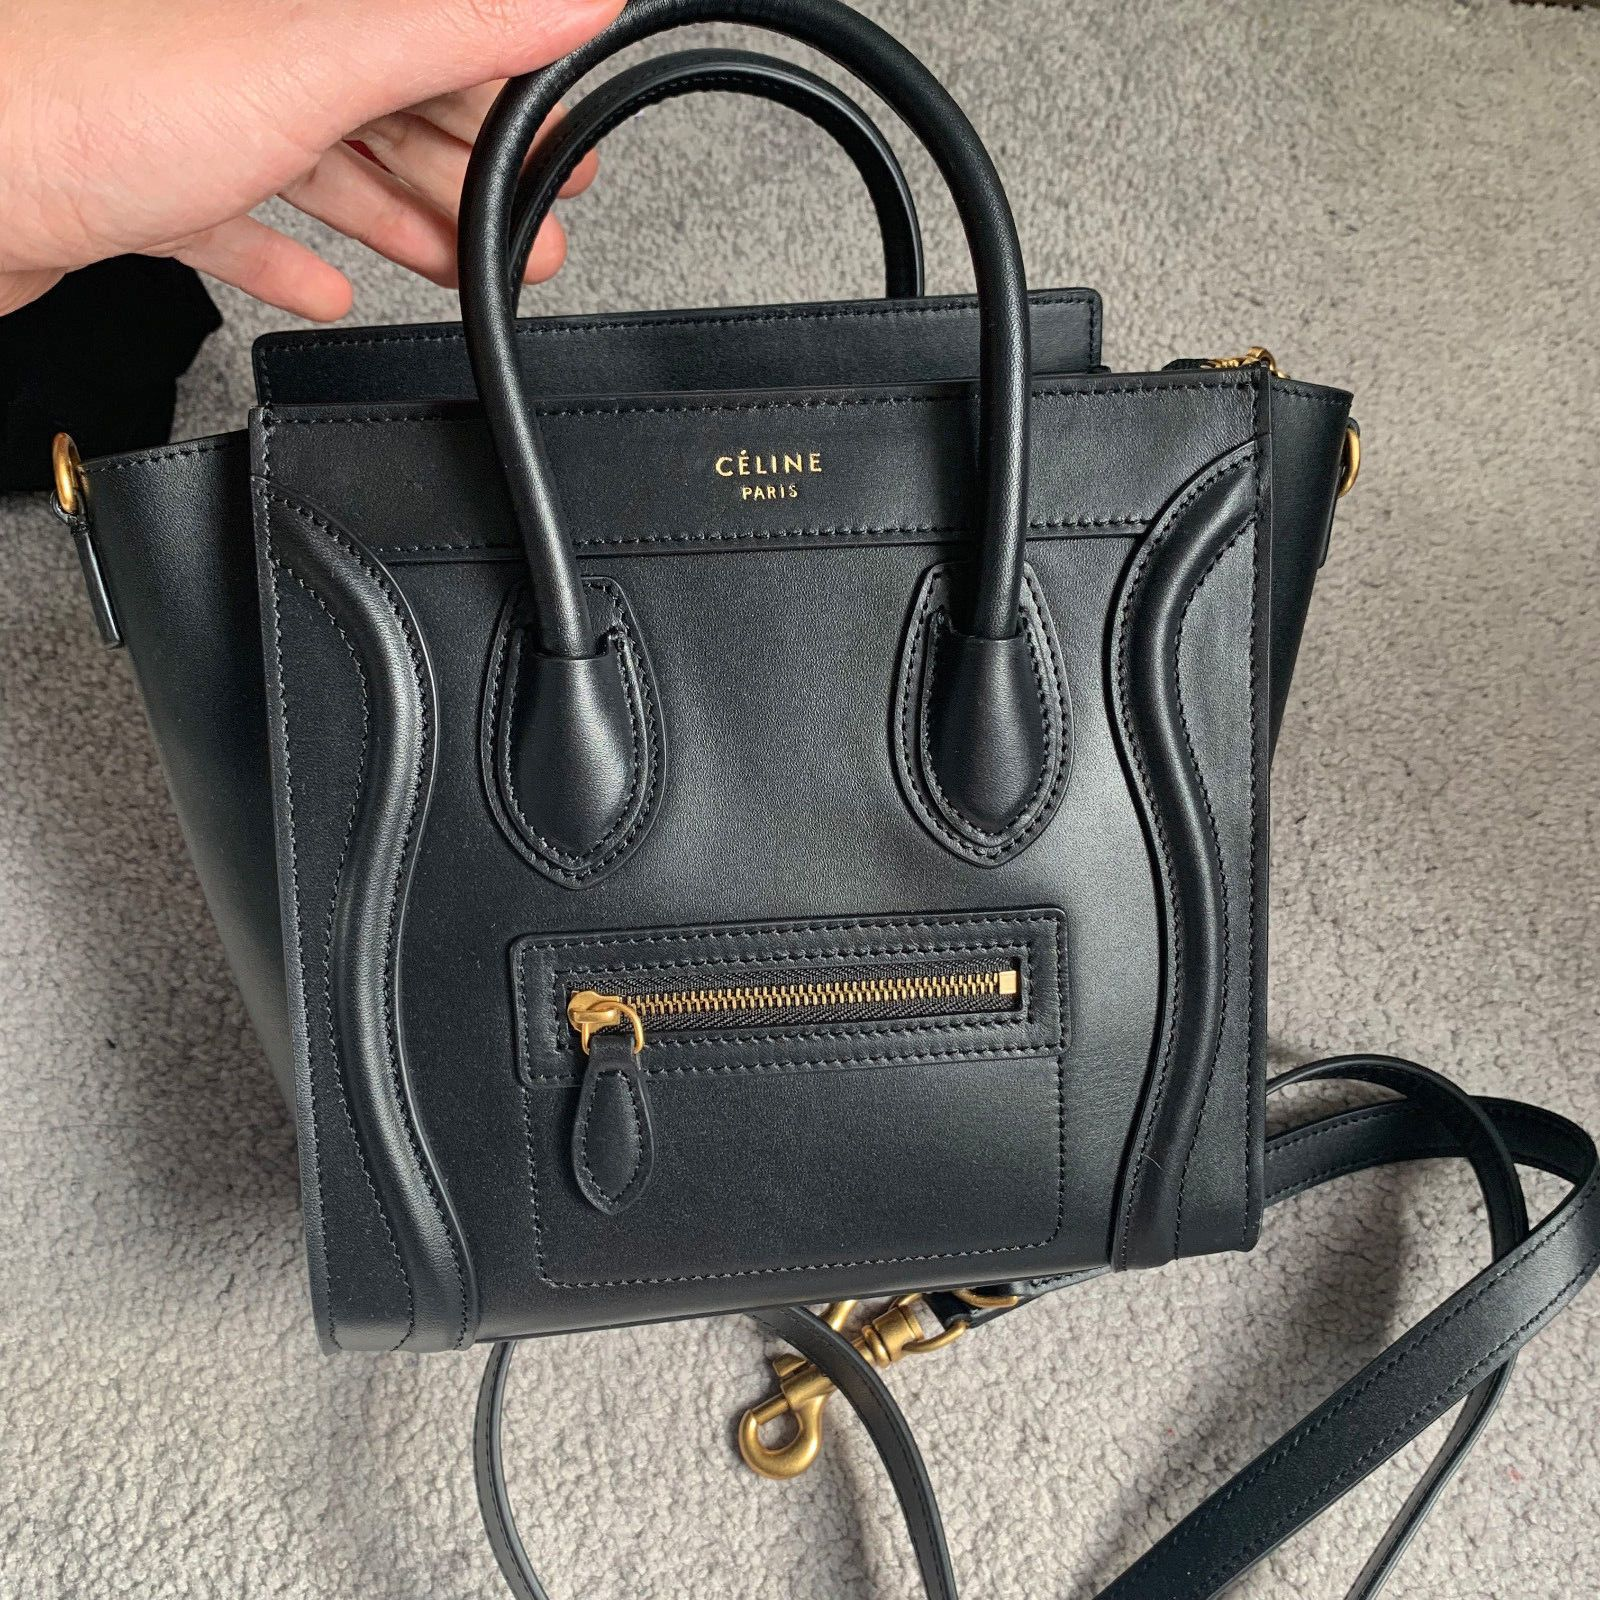 Auth Celine Nano Luggage Bag In Smooth